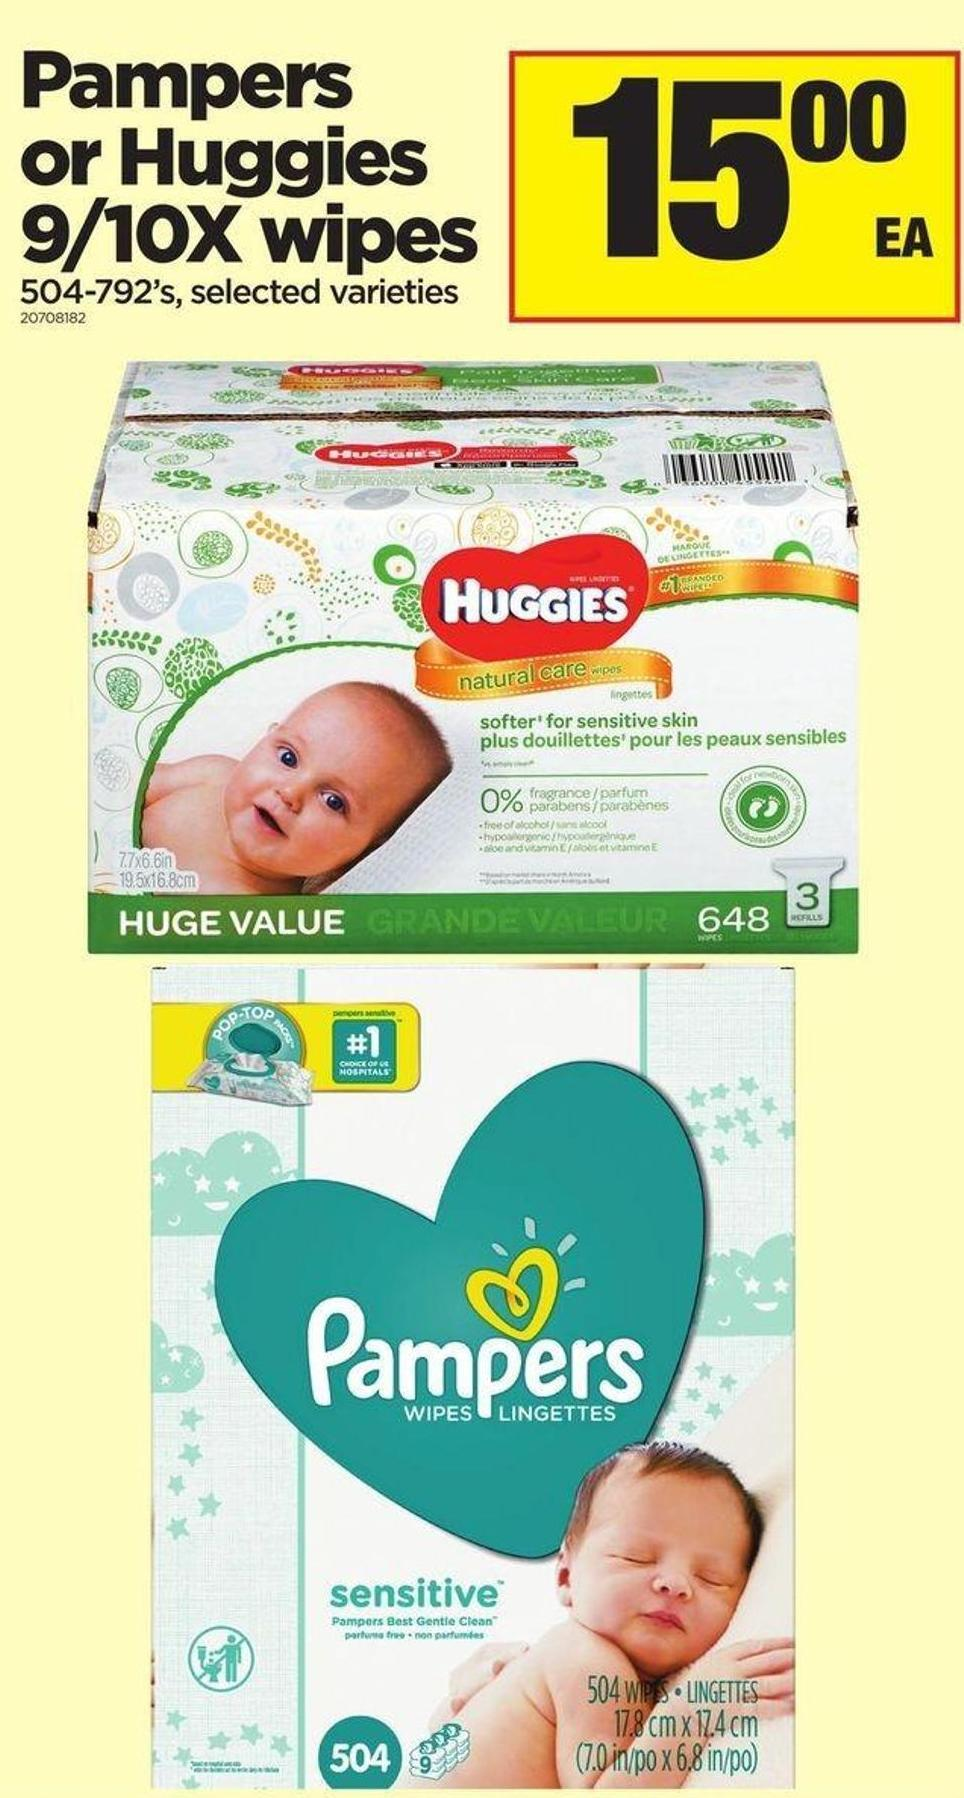 Pampers Or Huggies 9/10x Wipes - 504-792's